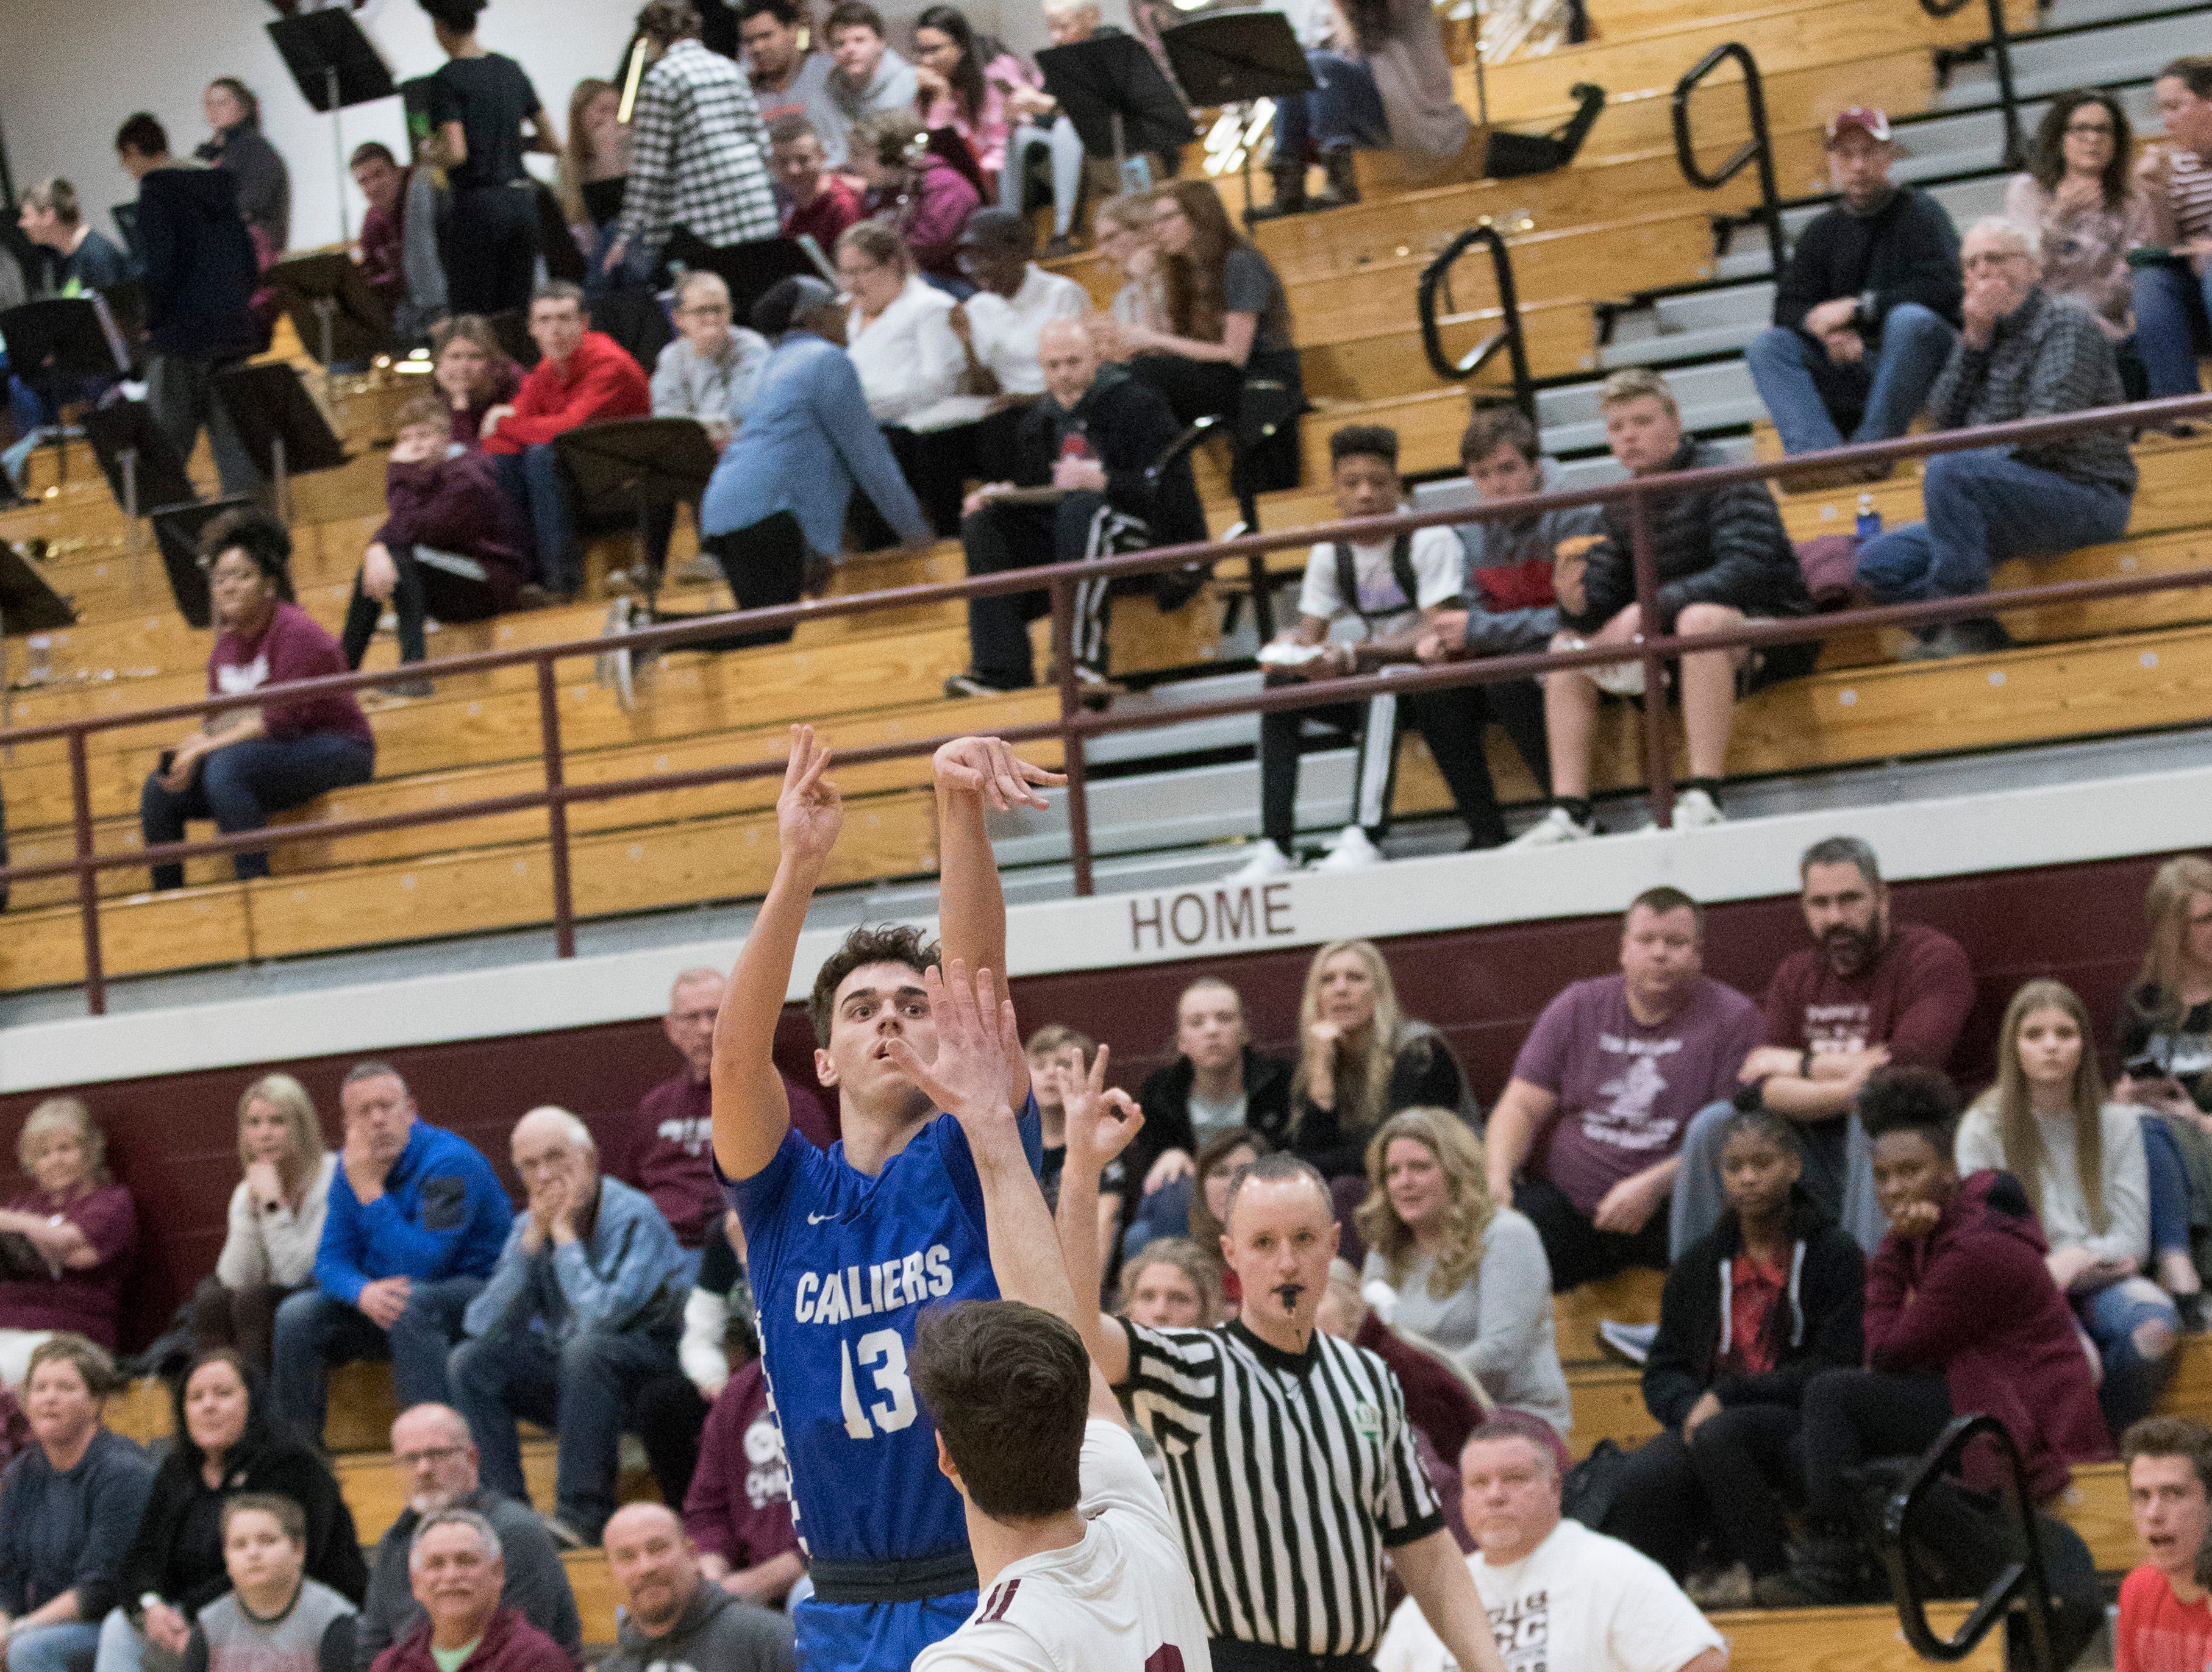 Canal Winchester High School defeated Chillicothe High School Wednesday night 70-67 in Canal Winchester, Ohio.